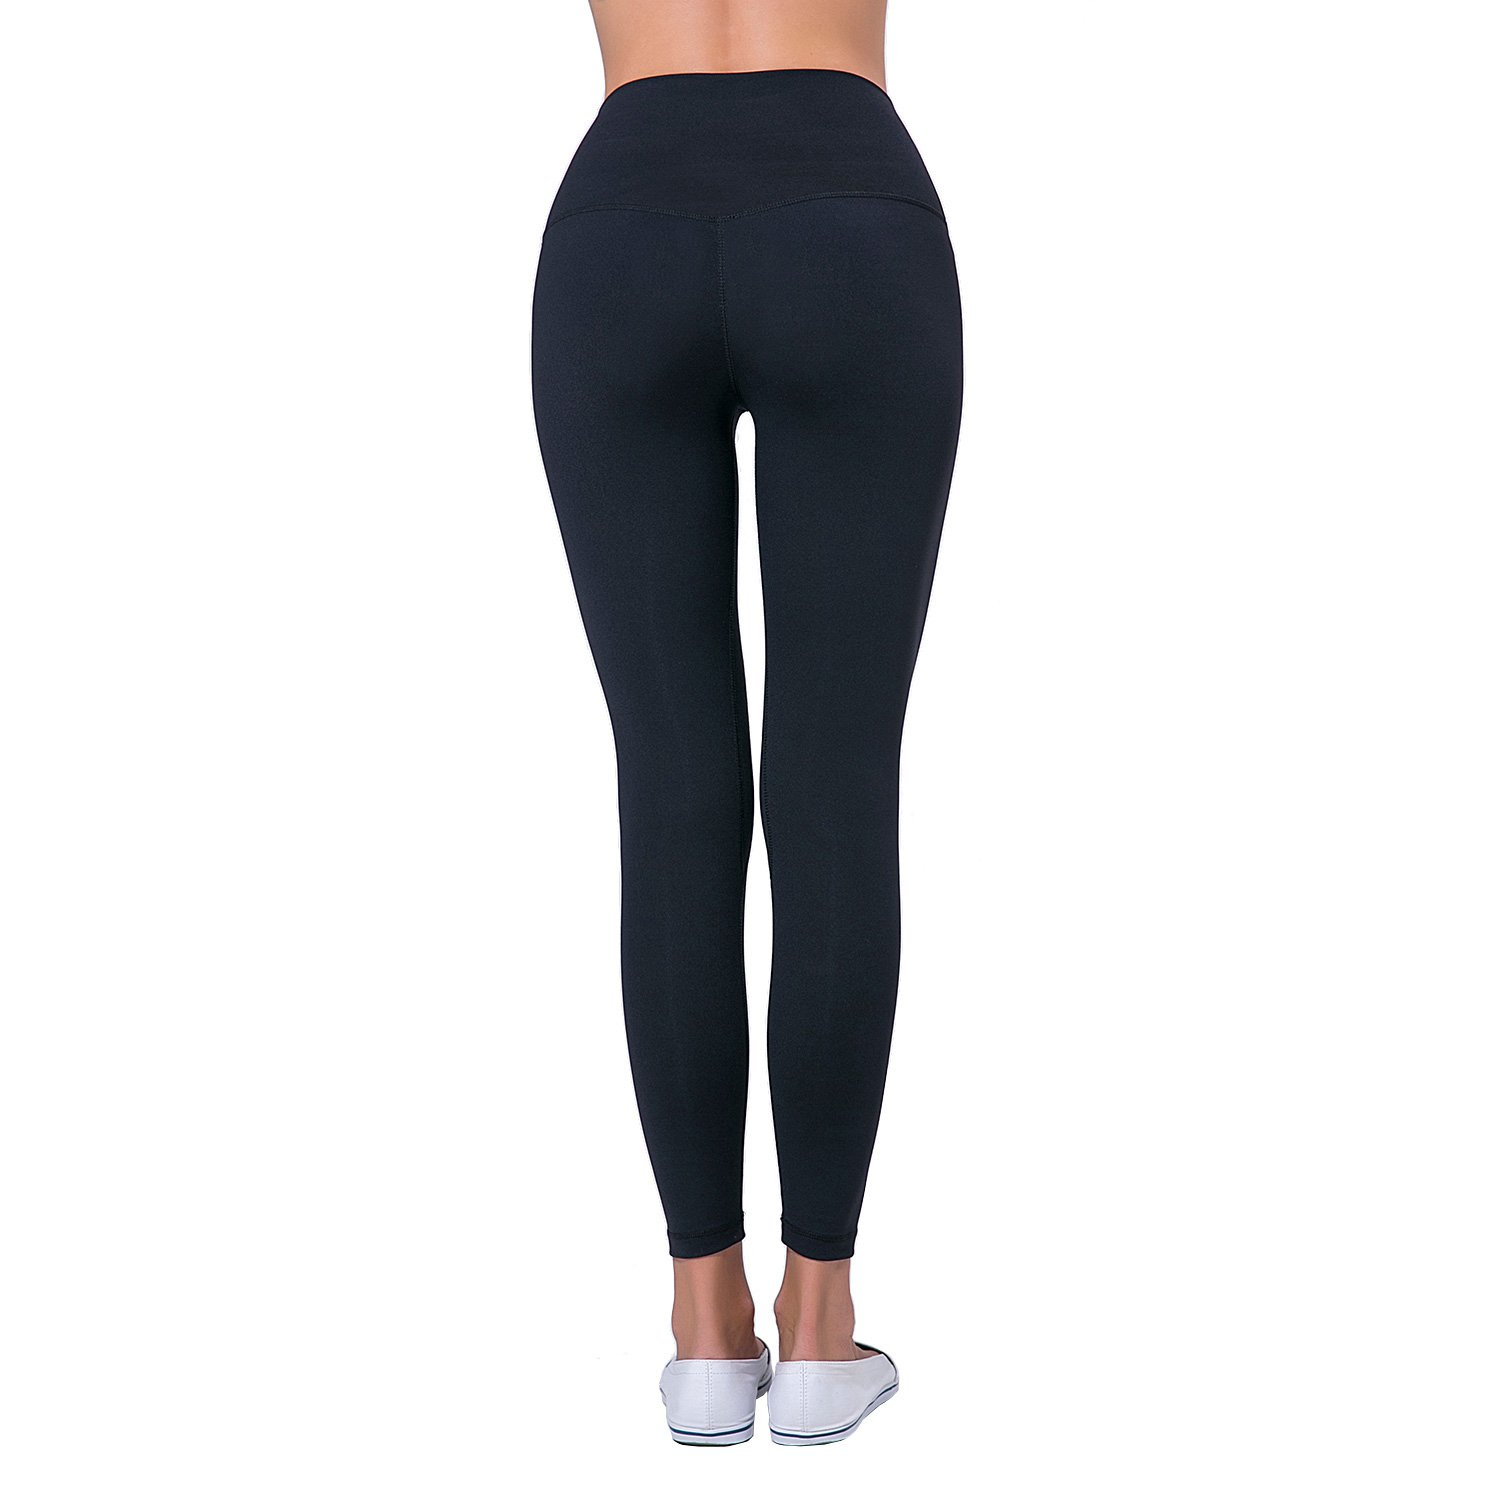 Witkey Power Flex Stirrup Yoga Pants High Waist Tummy Control Crisscross Yoga Leggings for Workout Running